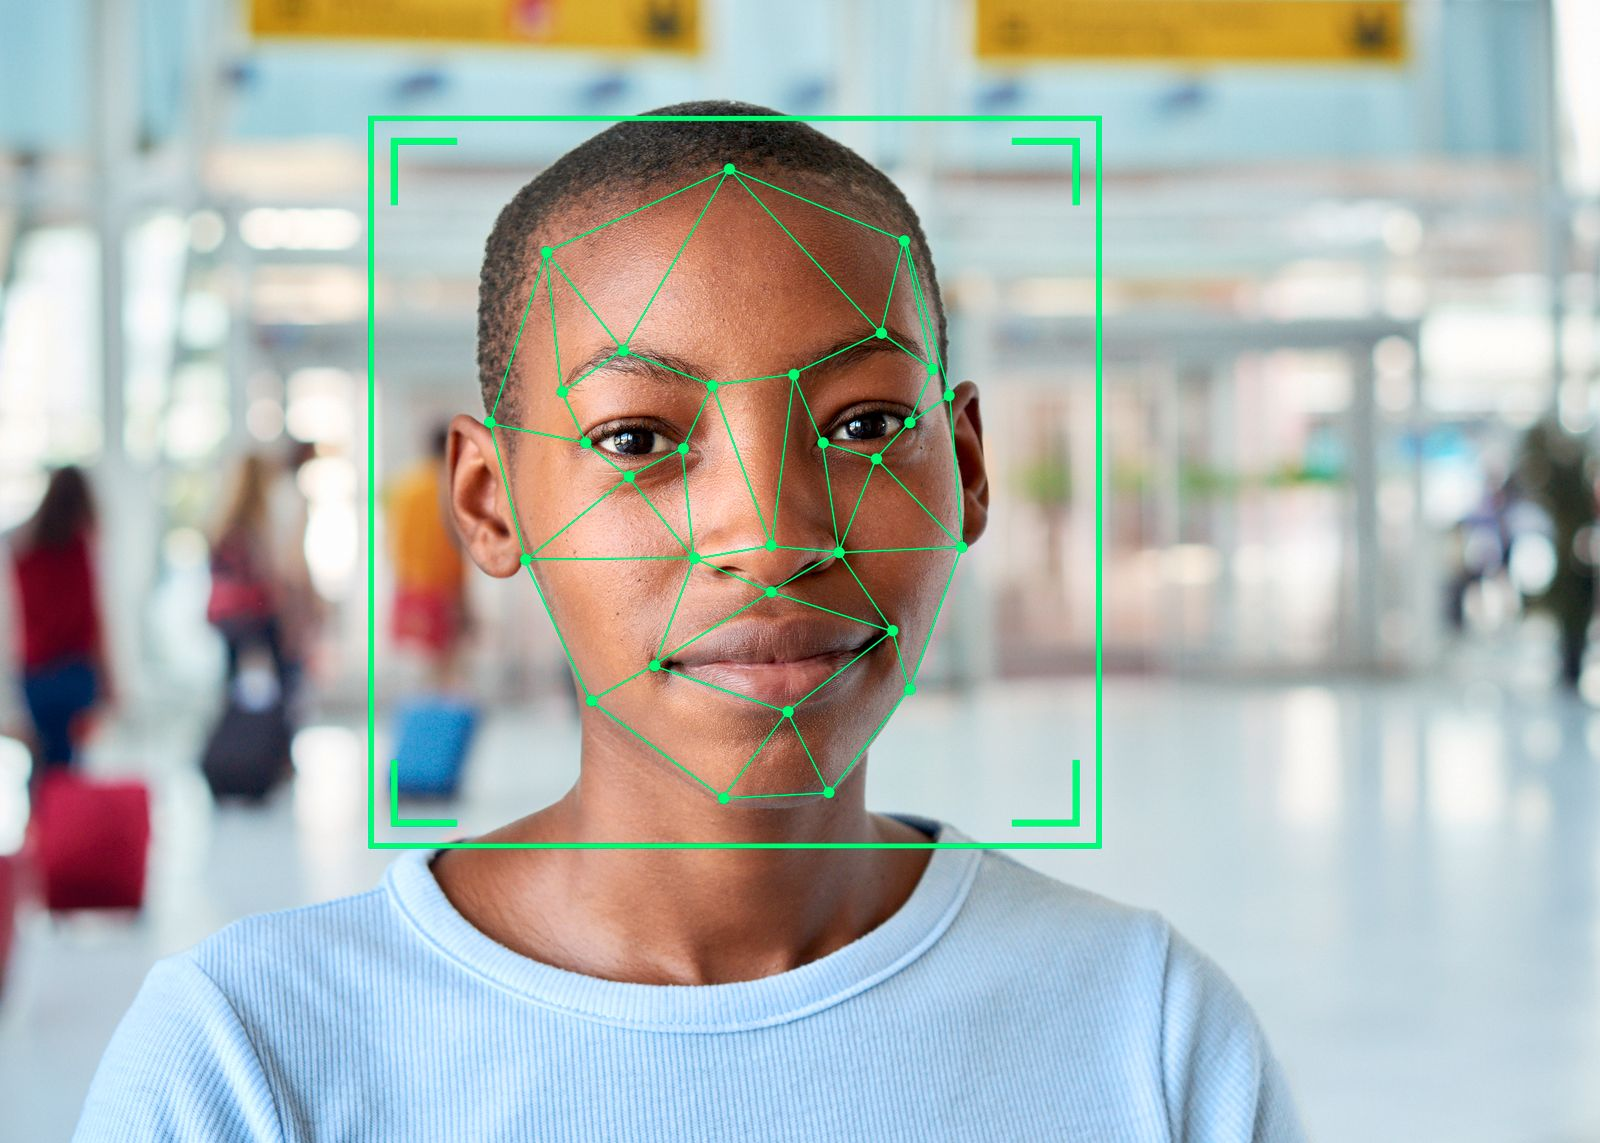 Face recognition markings on the face of a short-haired young woman.